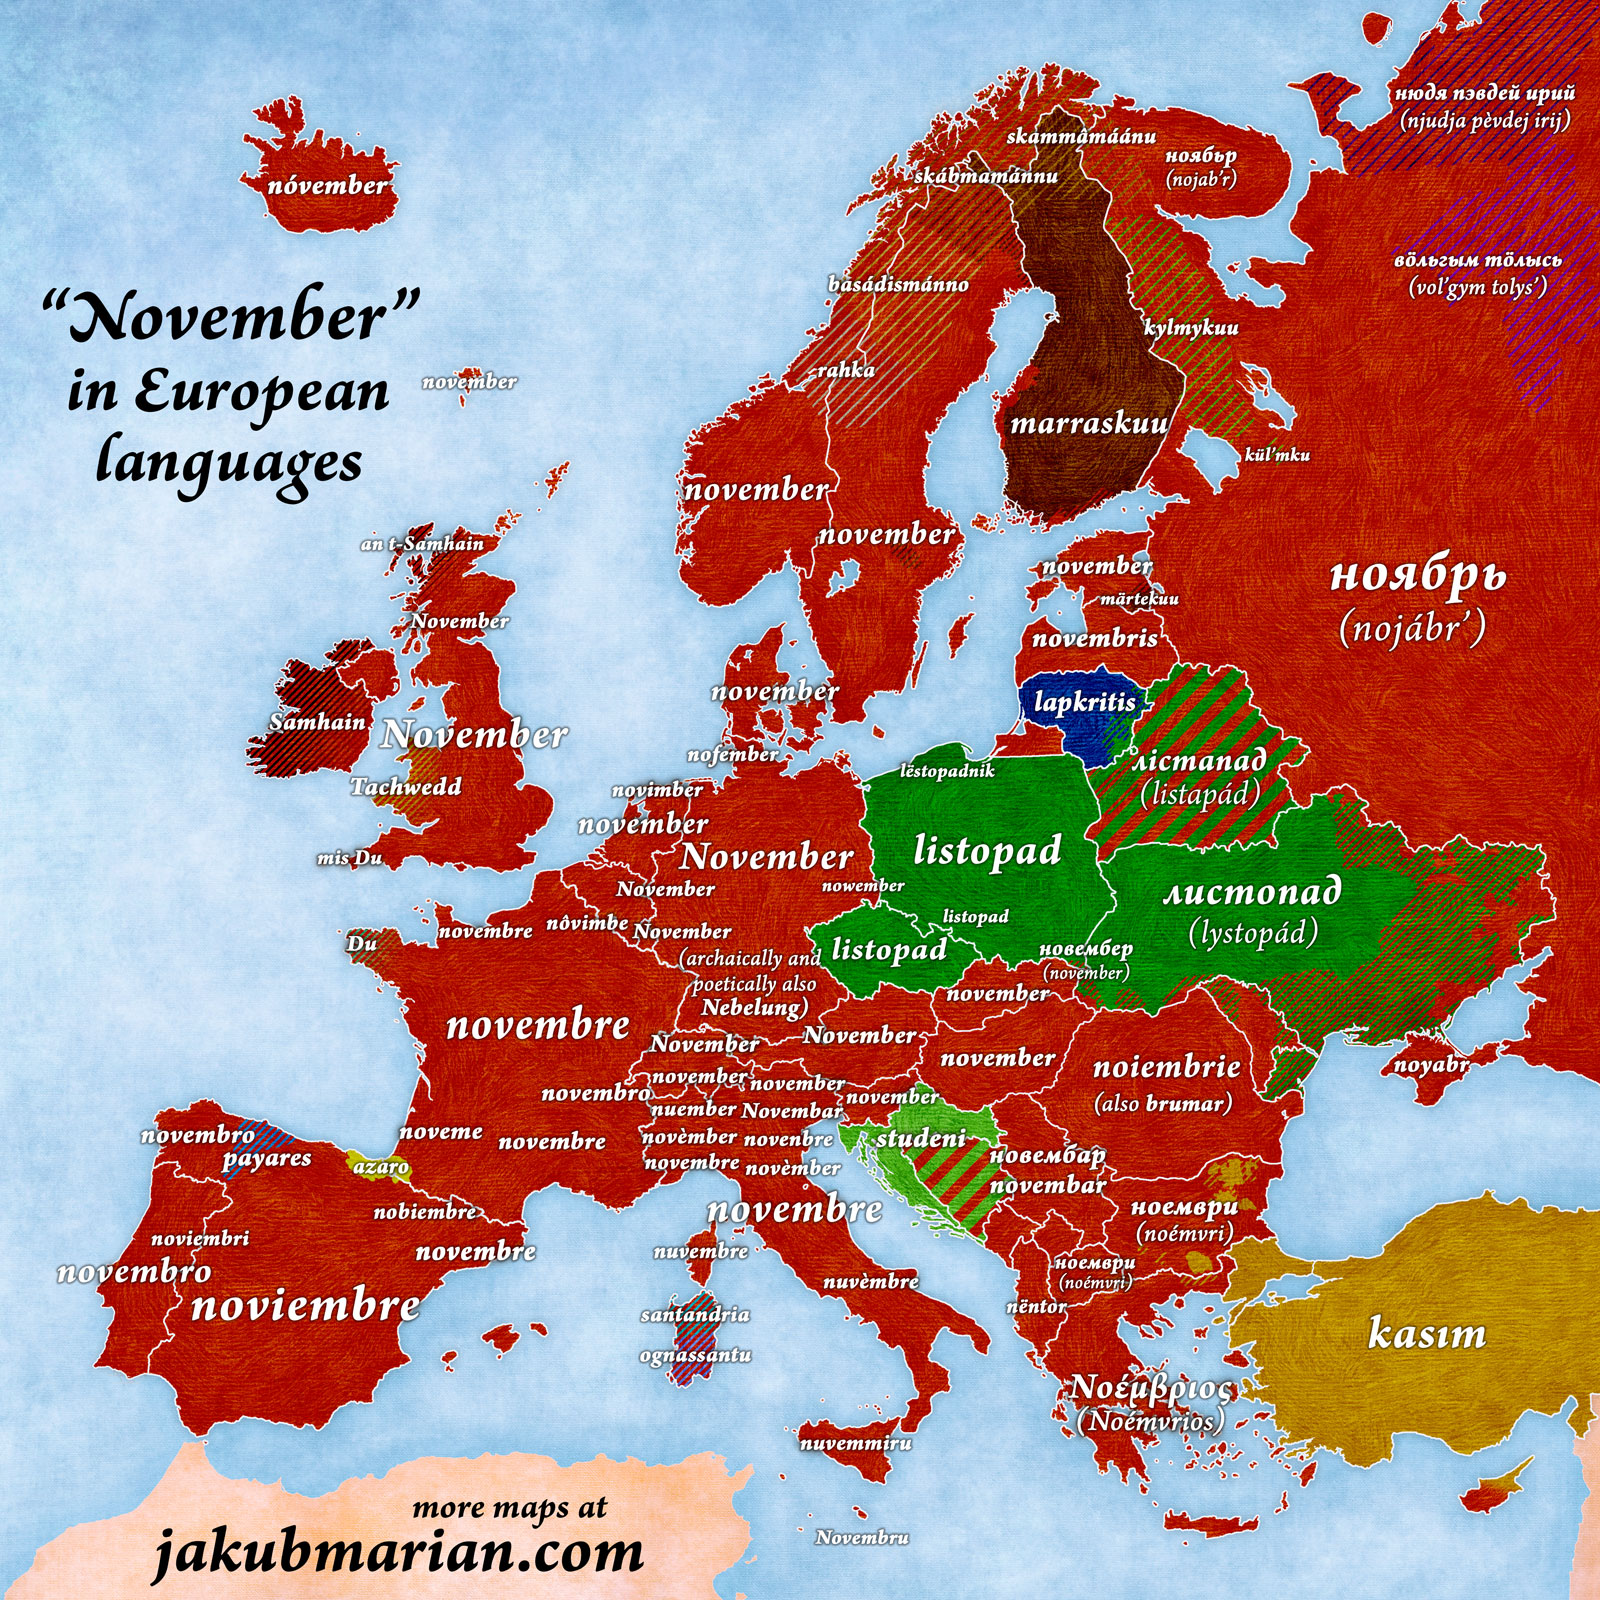 November in European languages